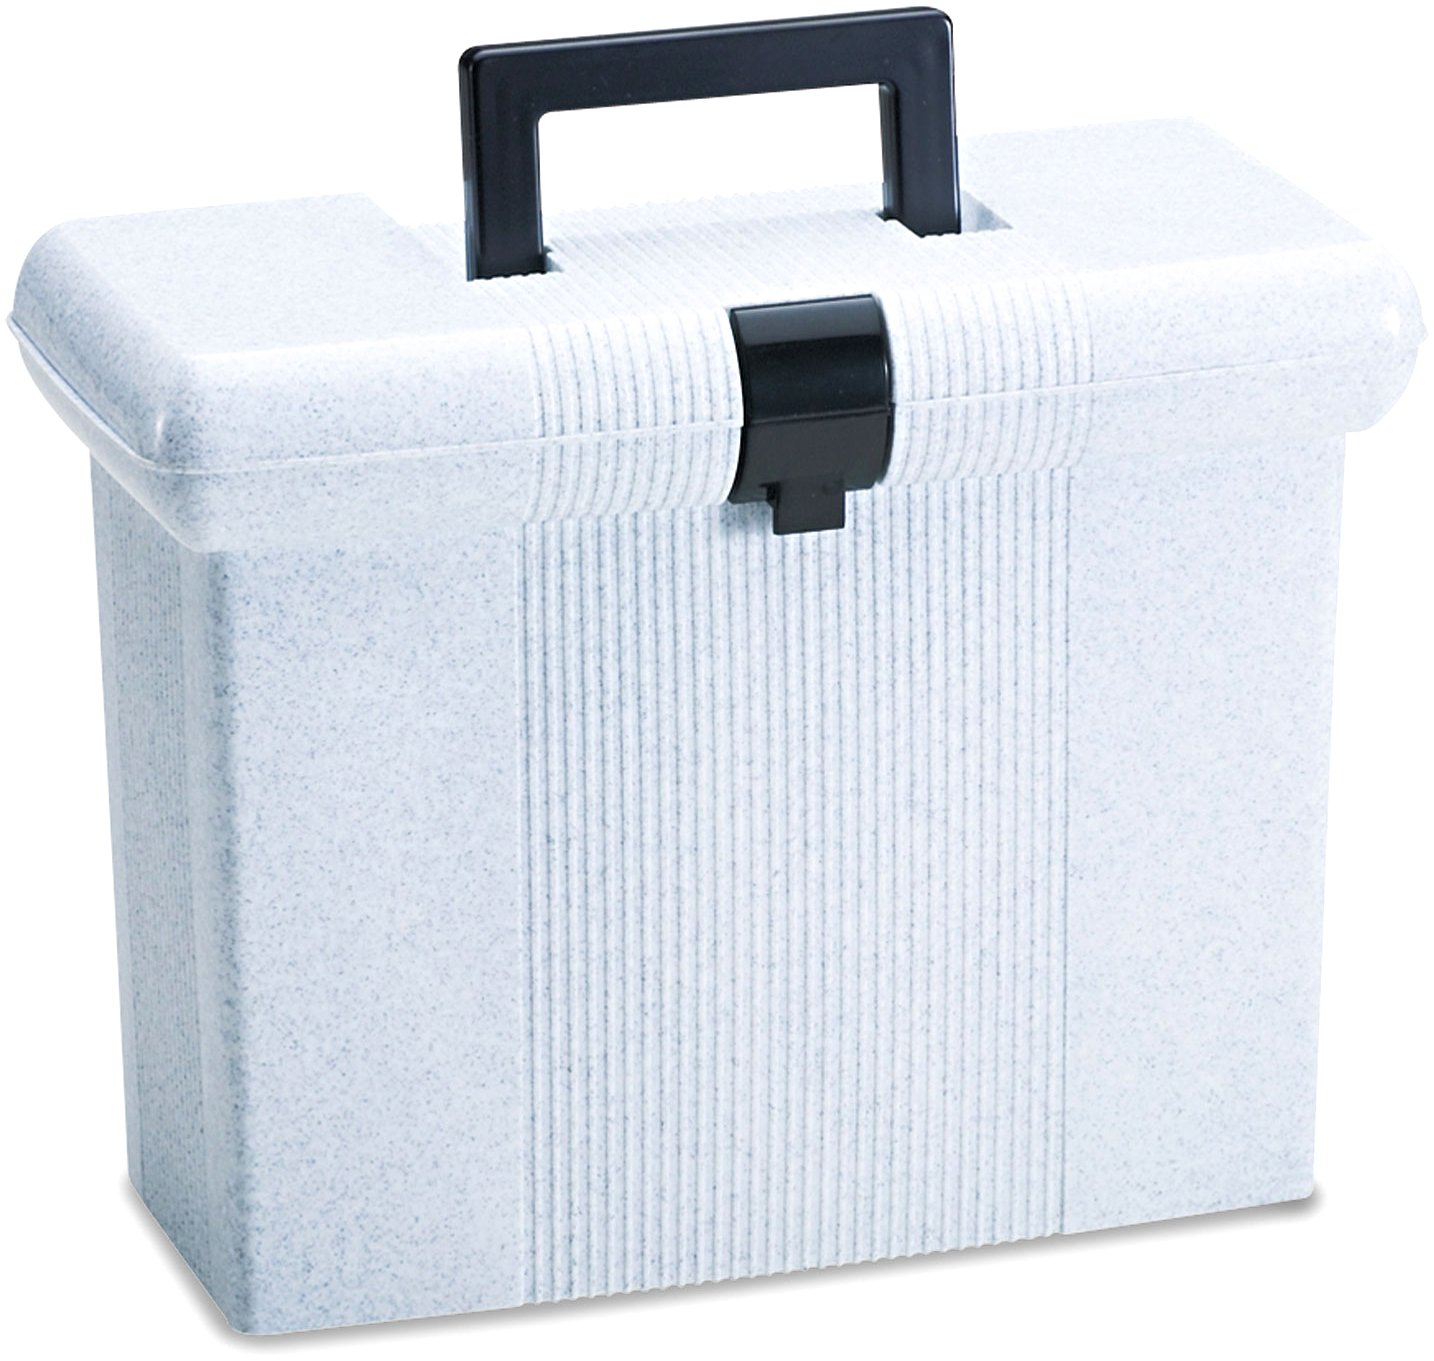 Oxford Portafile File Box